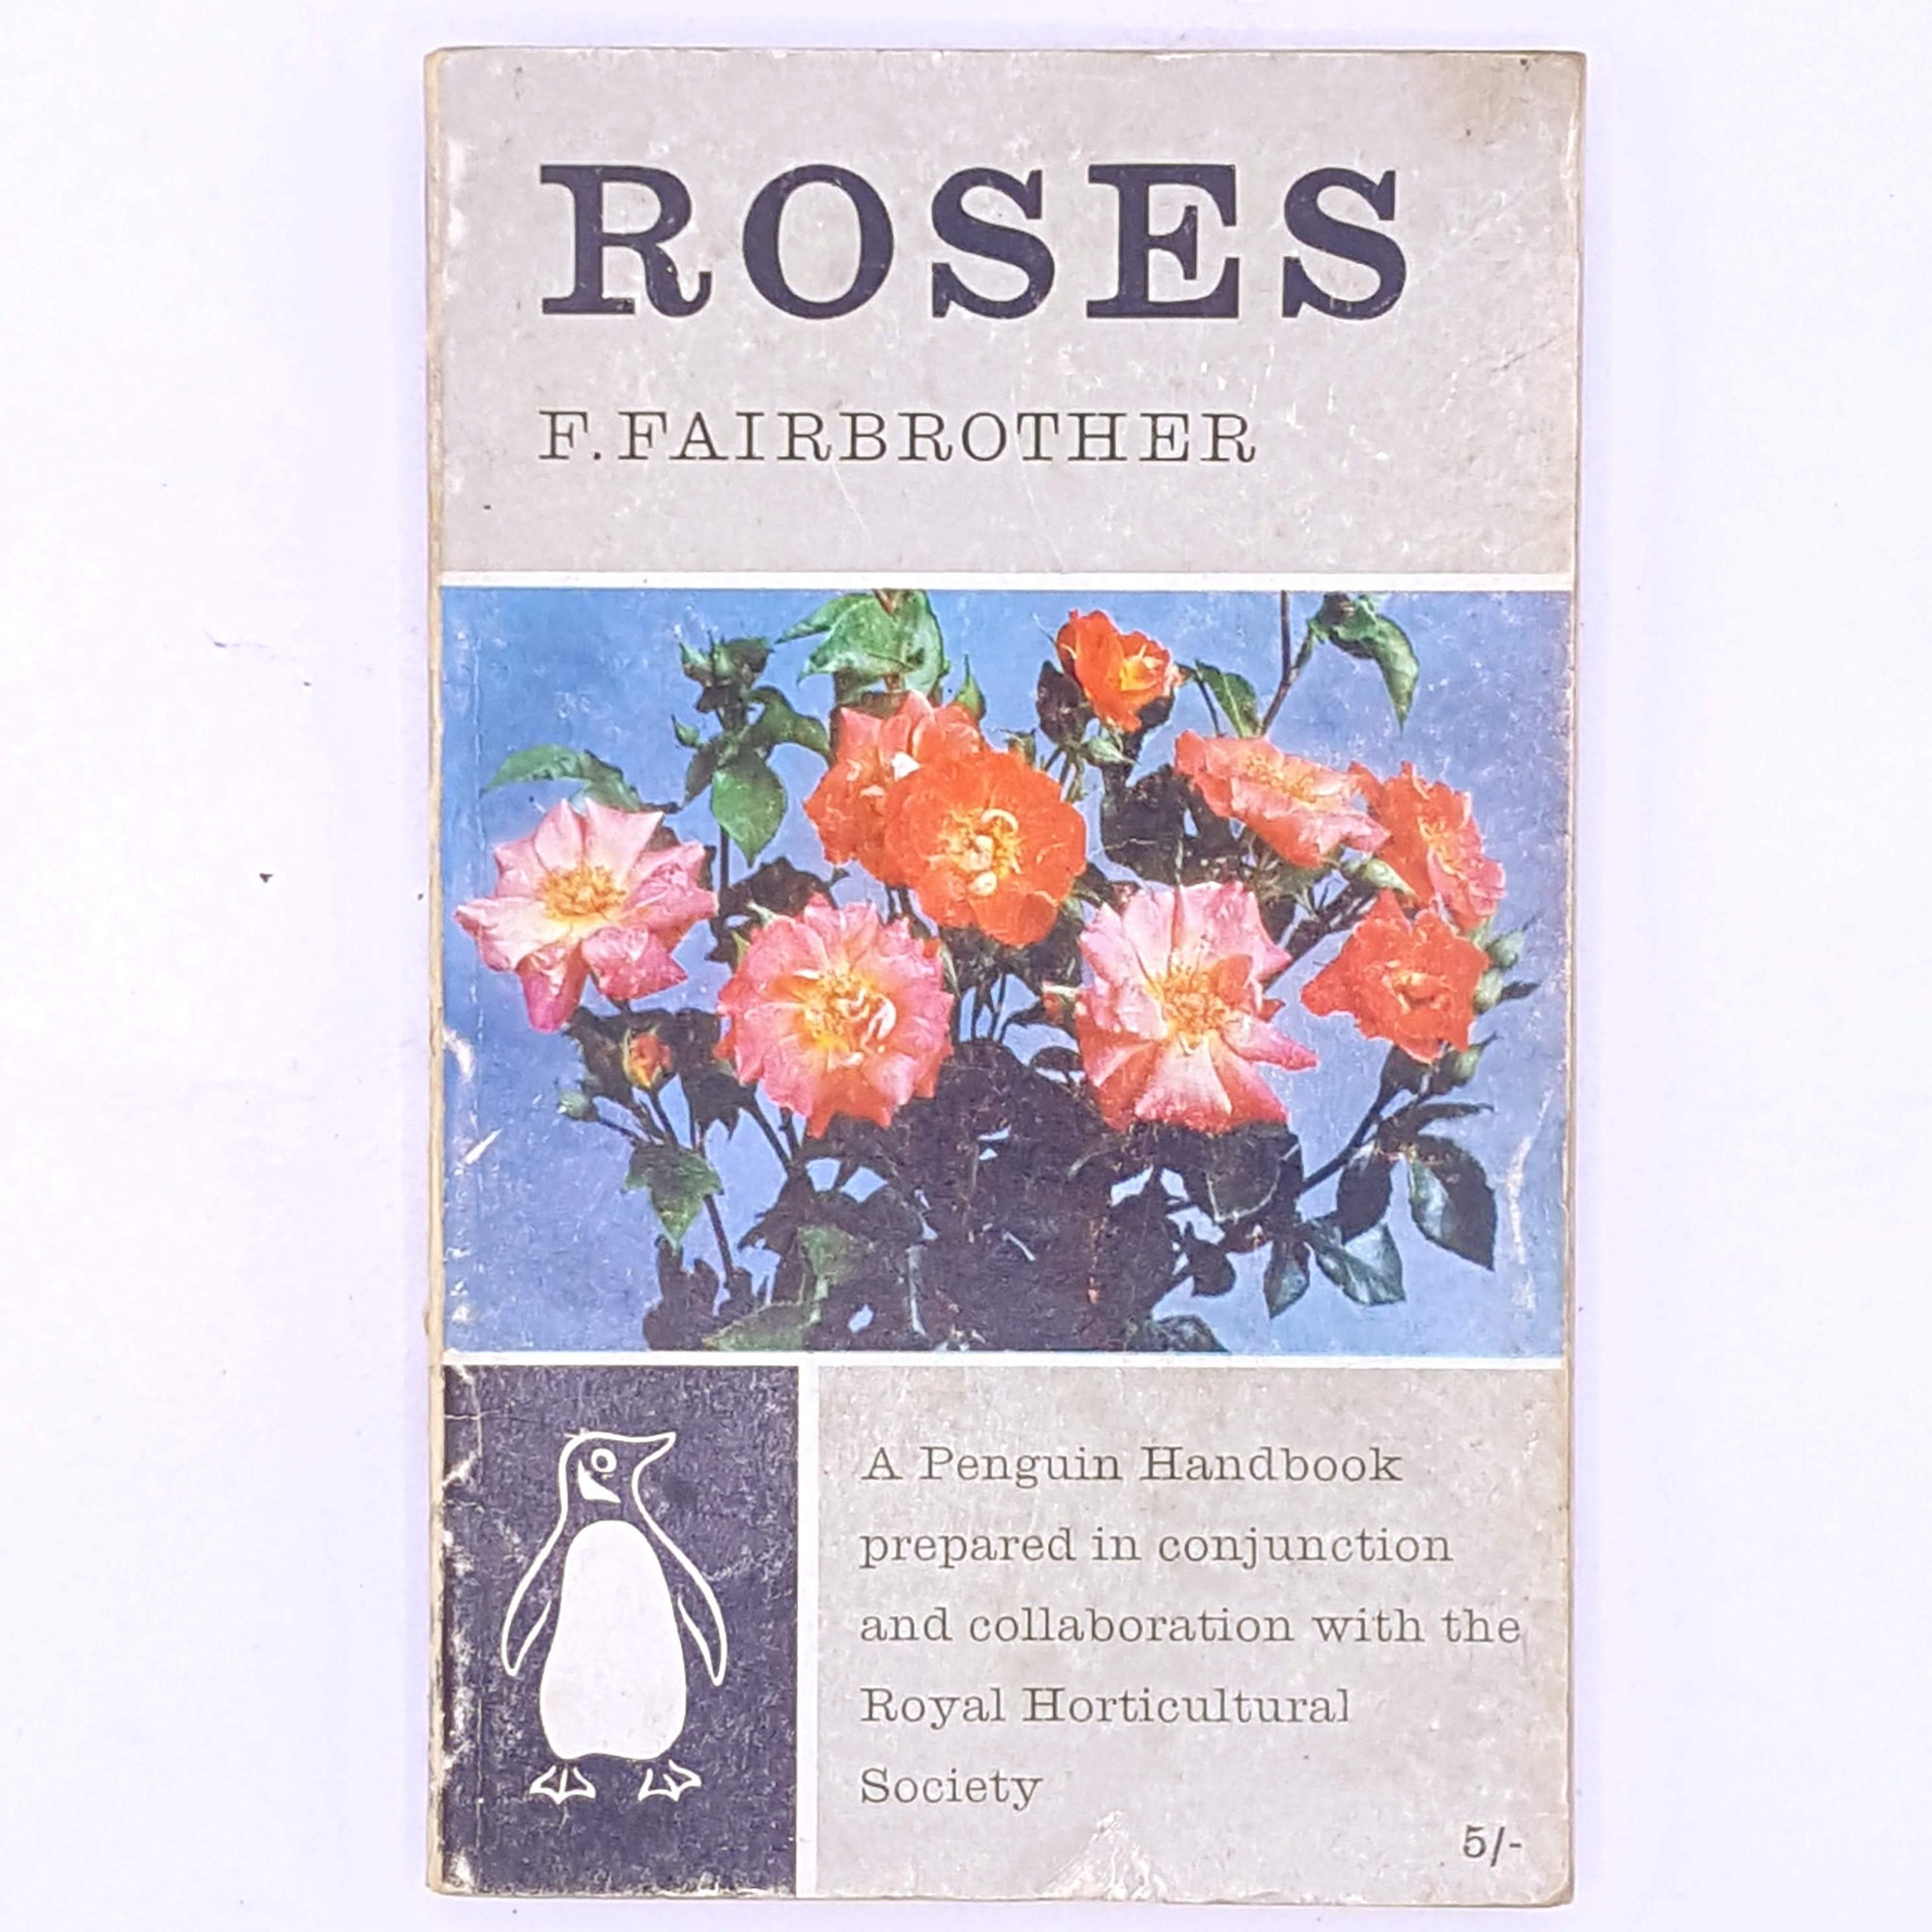 vintage-gardening-rose-garden-horticulture-hobbies-interests-Penguin-Handbook-Roses-F.Fairbrother-penguin-rose-roses-flowers-floral-botanical-garden-old-thrift-patterned-antique-country-house-library-books-decorative-classic-